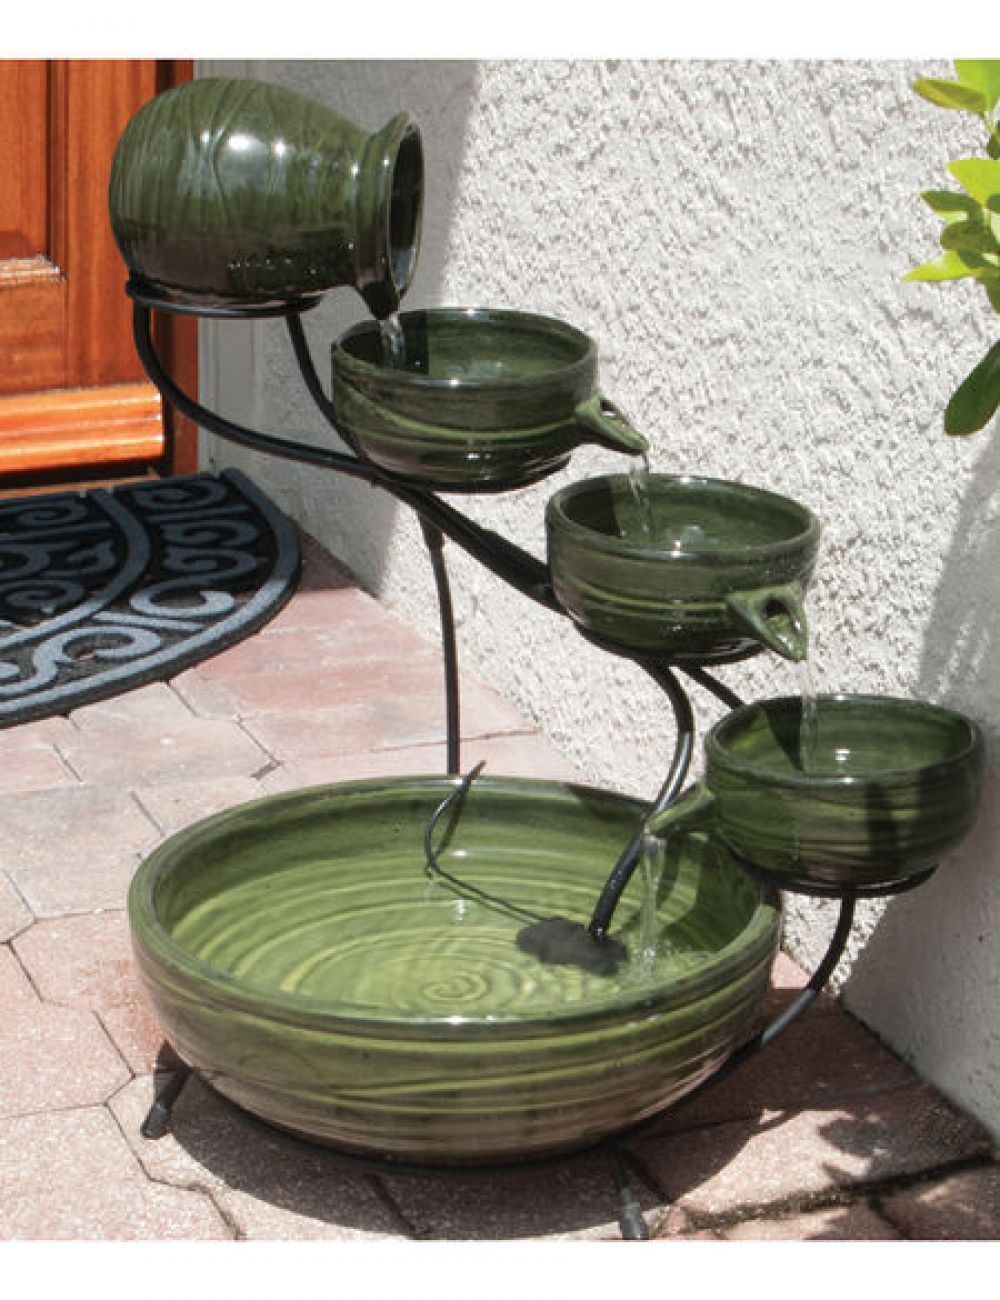 Awesome Ideas On Making Solar Fountain Garden In 2020 Diy Solar Fountain Solar Fountain Garden Fountains